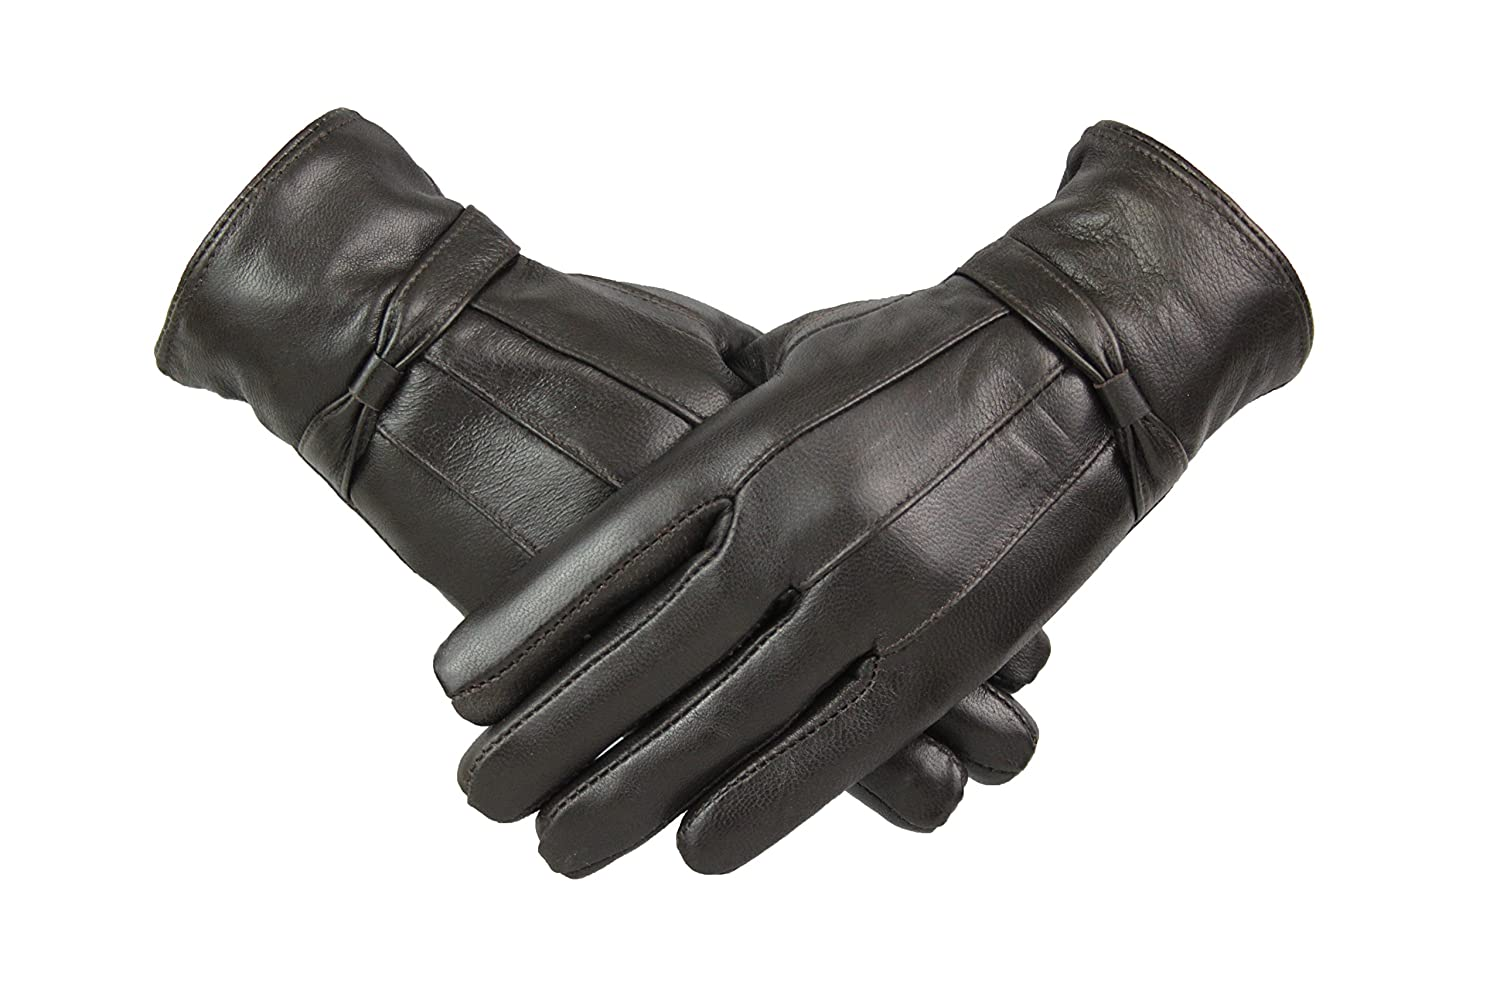 Womens Ladies Leather Gloves With Bow Design Warm Winter Fleece Lined All Size M L XL Christmas Gift